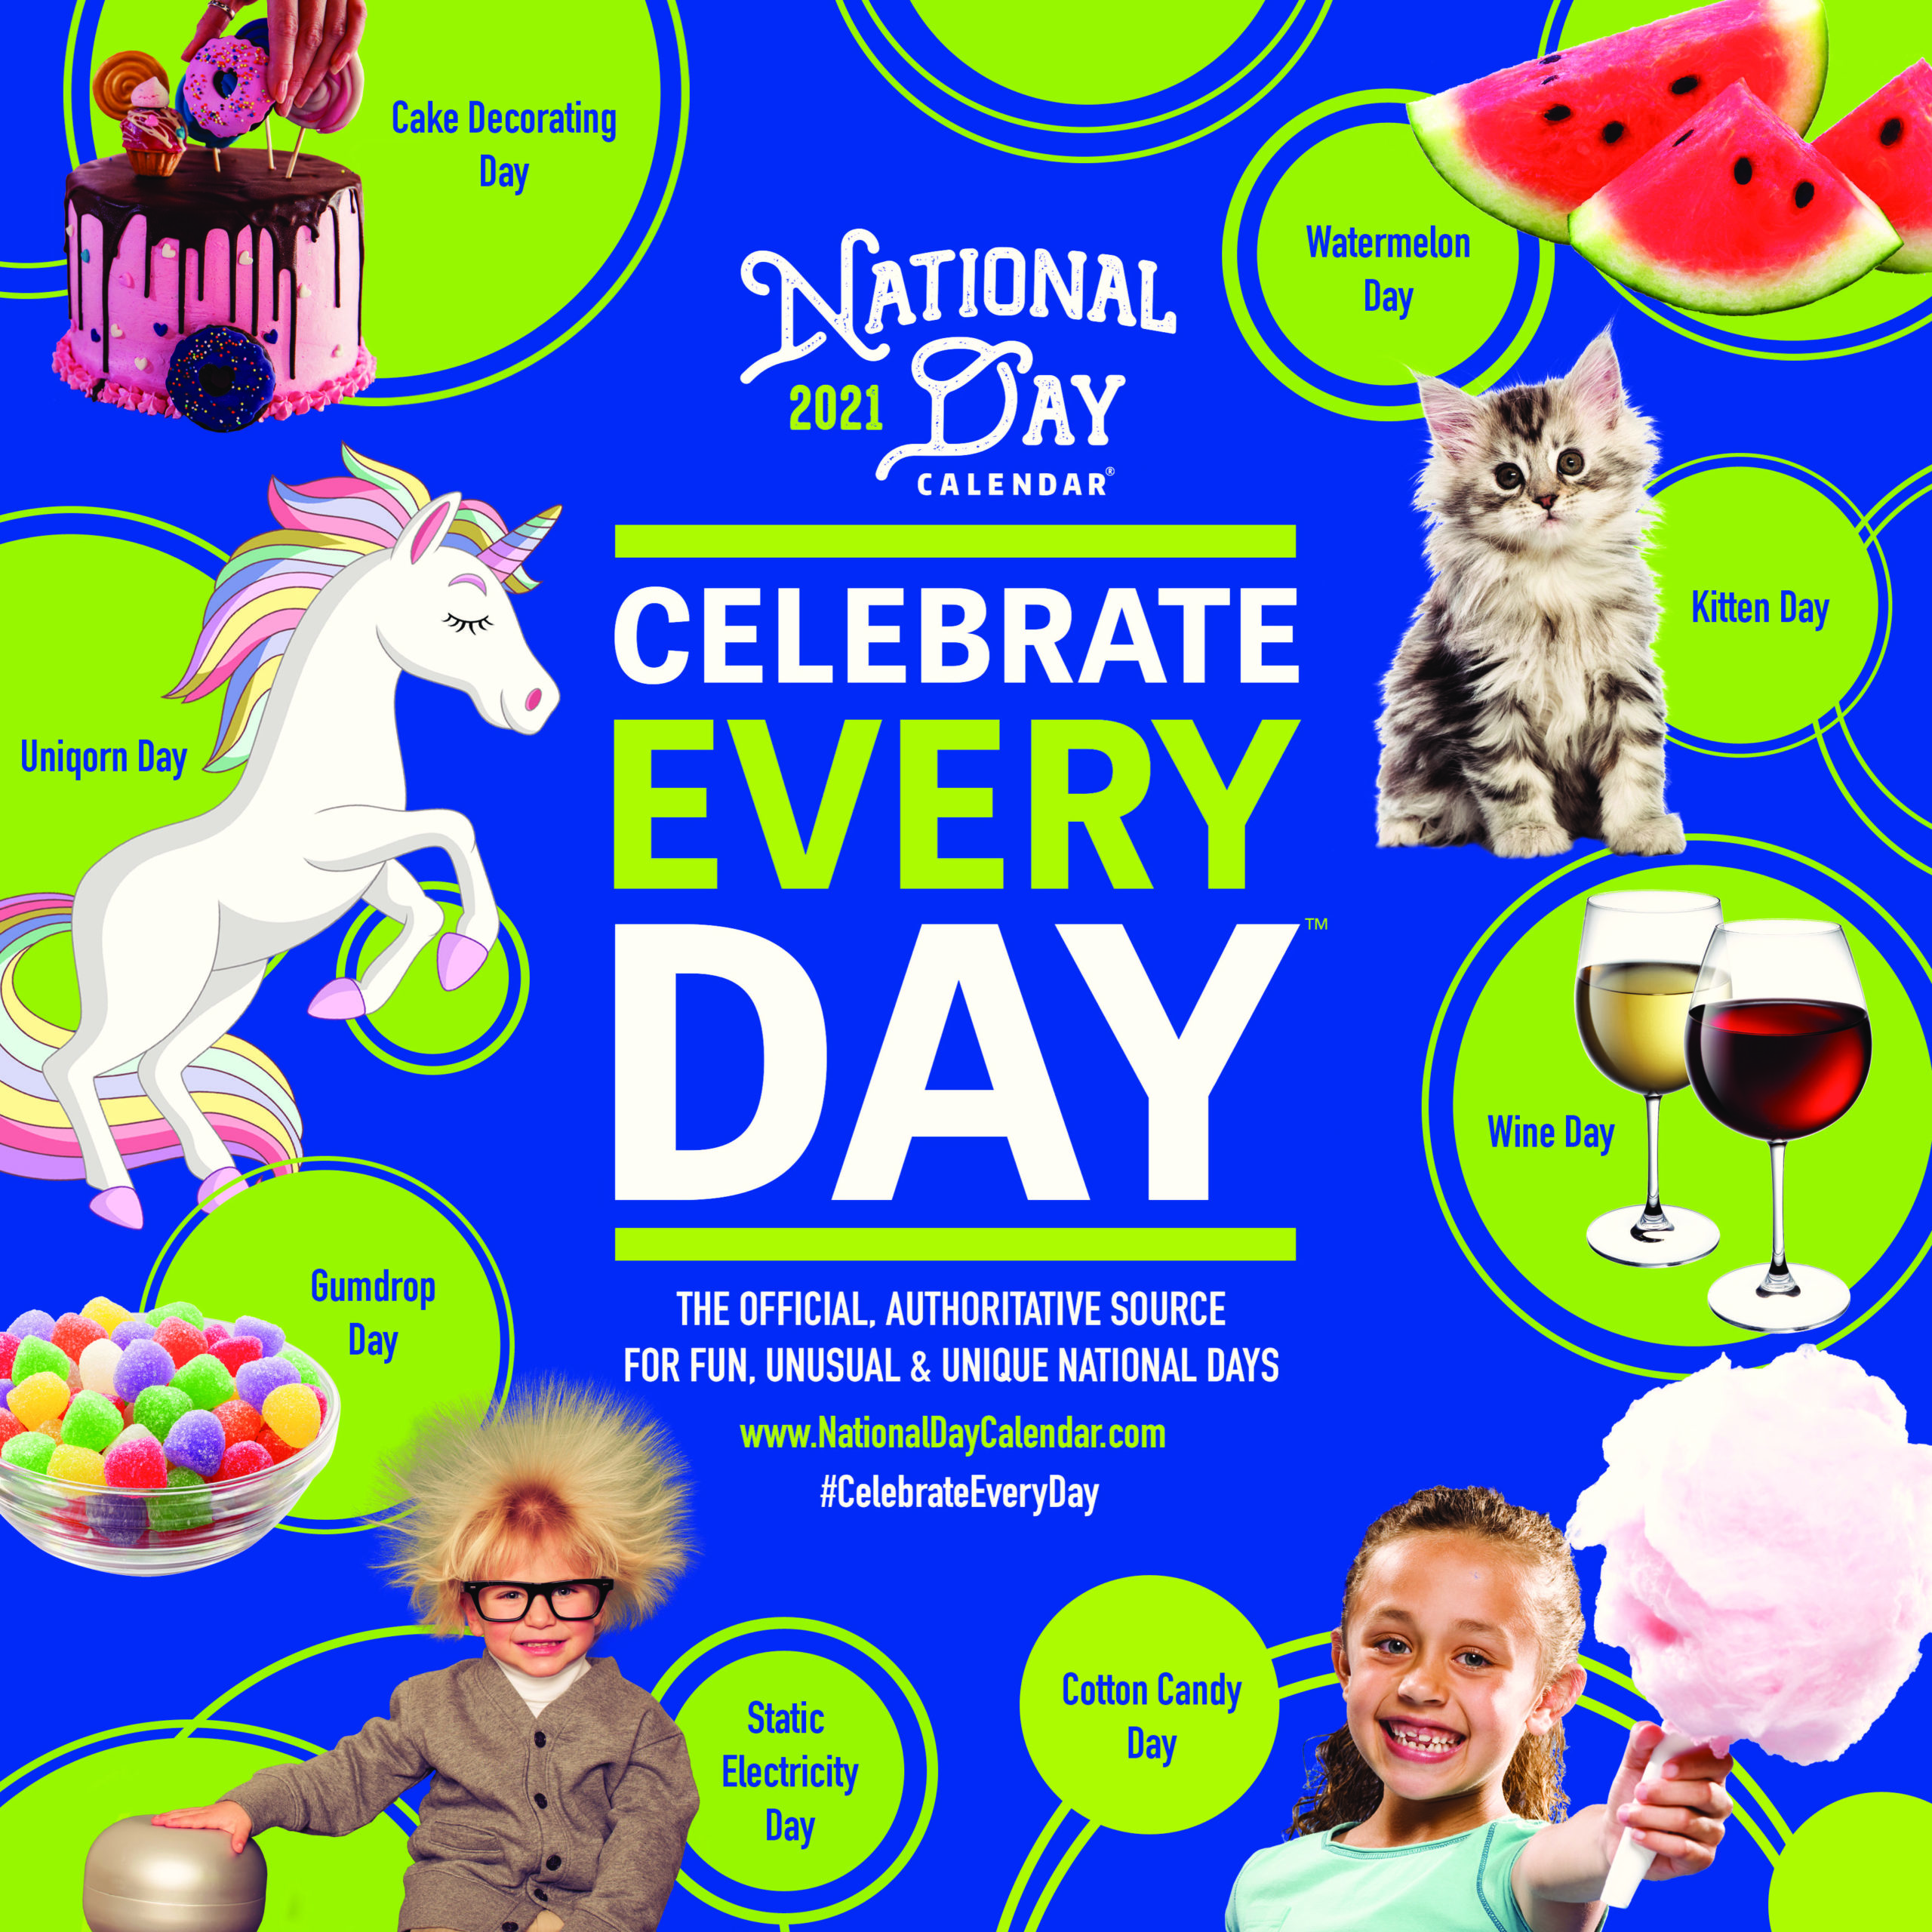 Special Days Calendar 2021 The 2021 Official Celebrate Every Day Wall Calendars have arrived